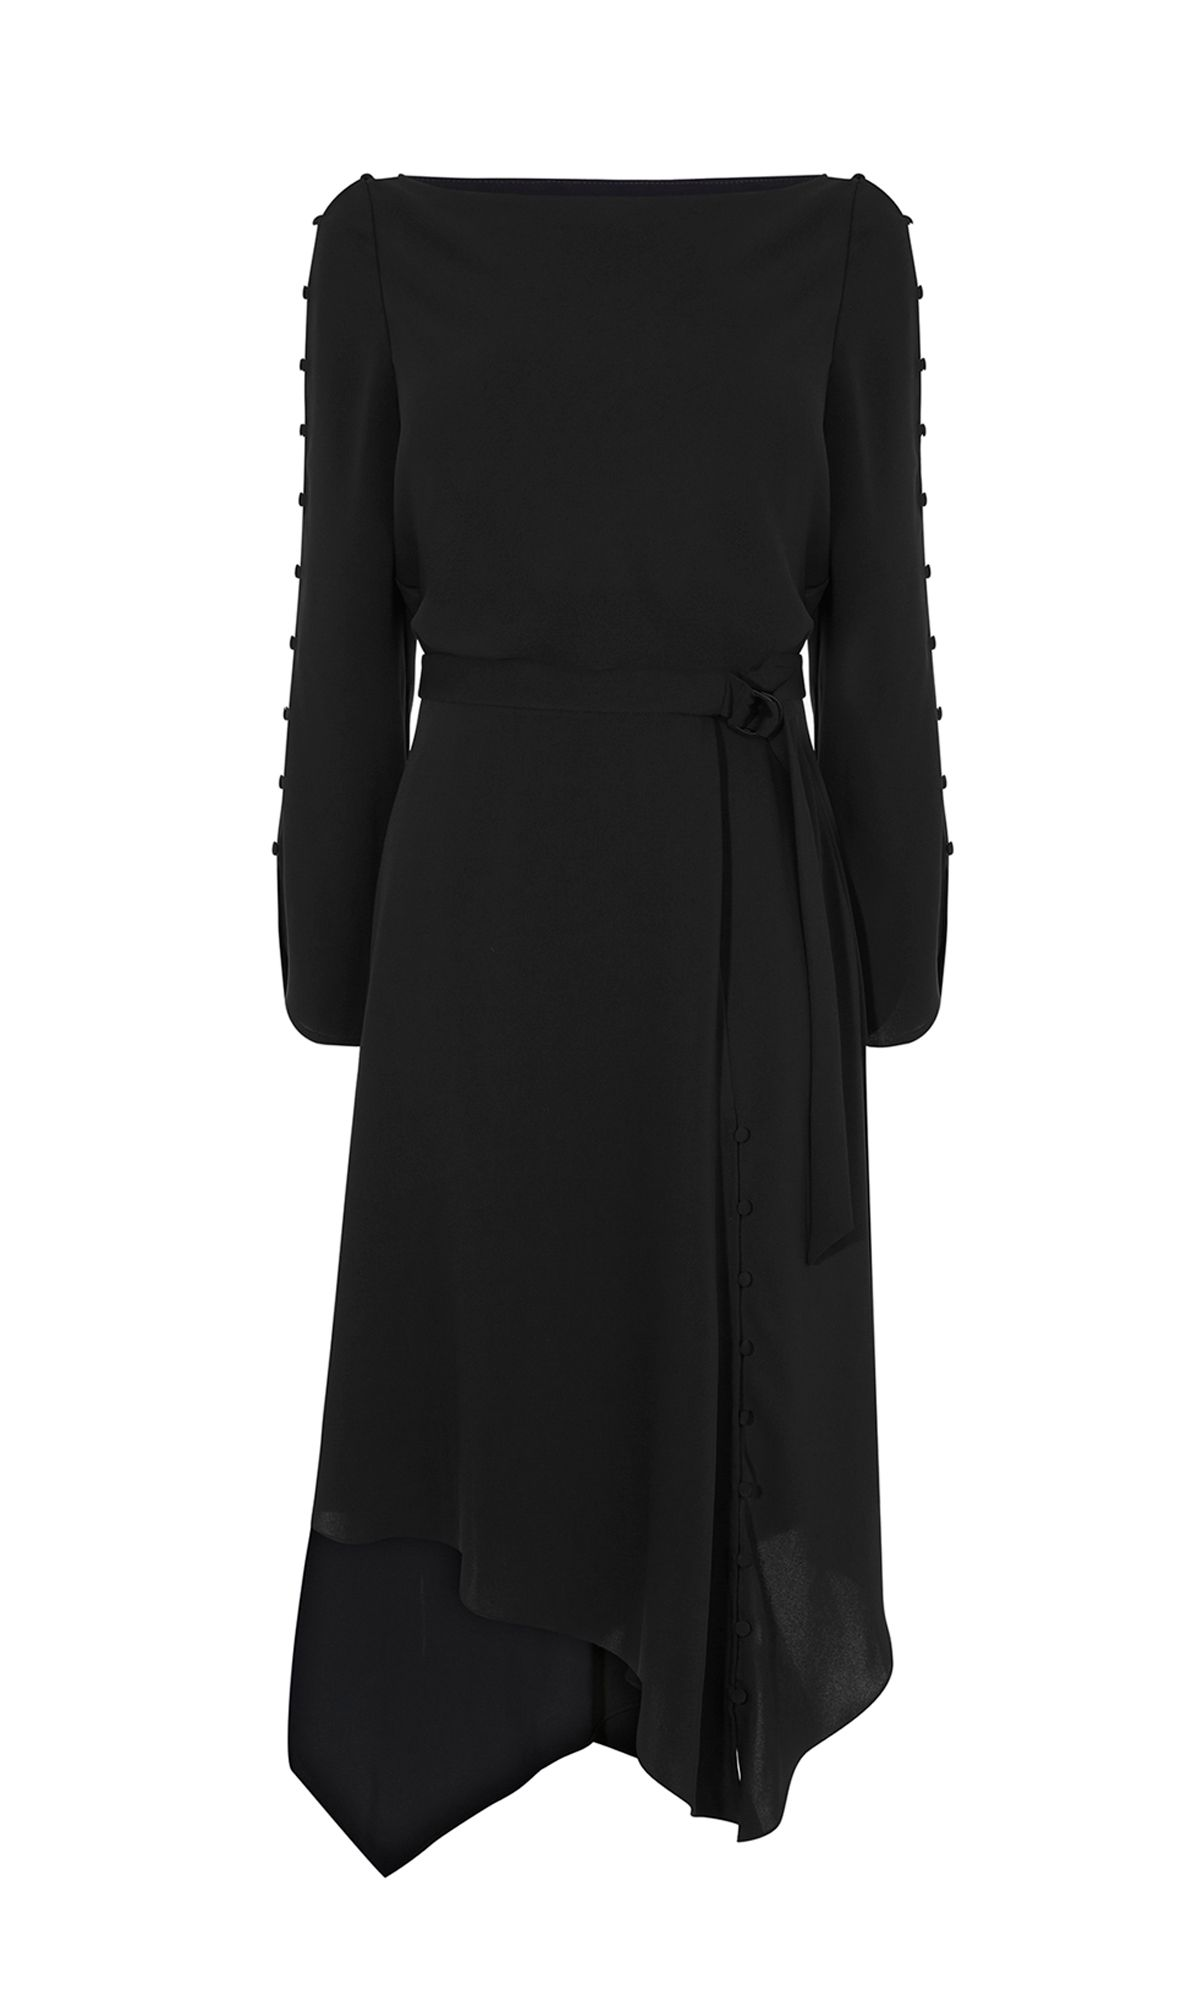 Karen Millen Asymmetric Cut-Out Midi, Black